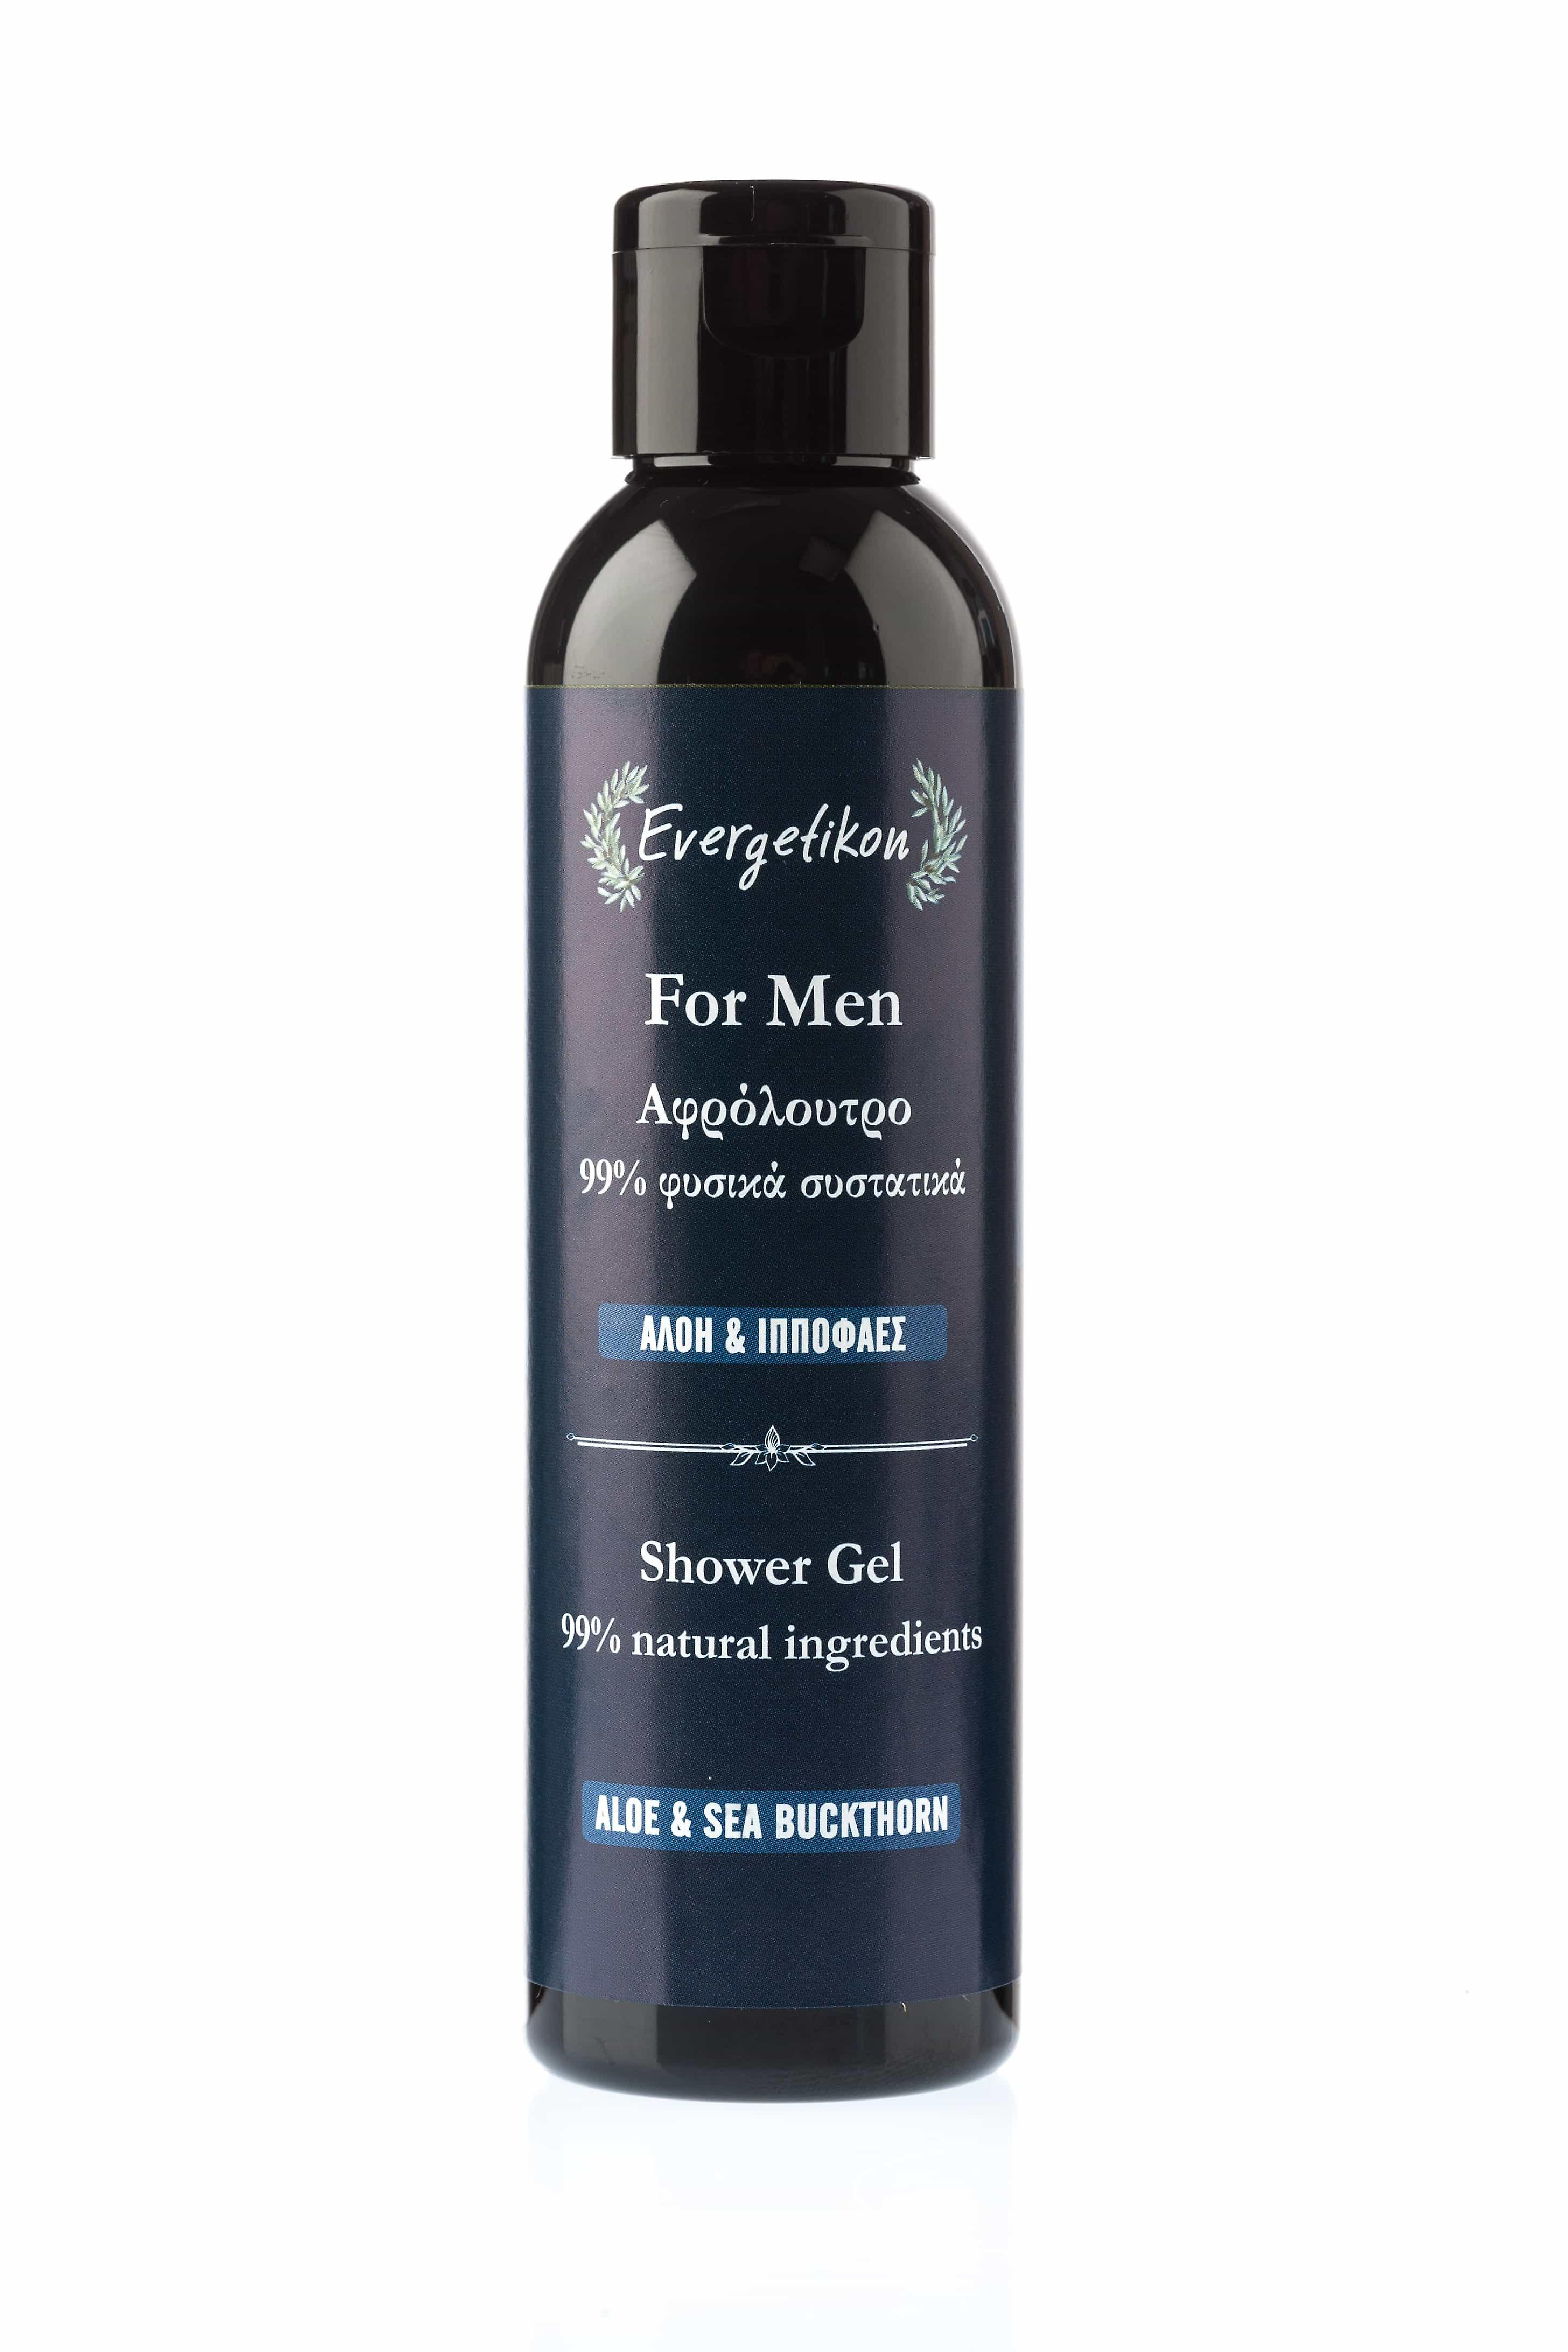 Shower gel for men with Aloe and Sea Buckthorn.